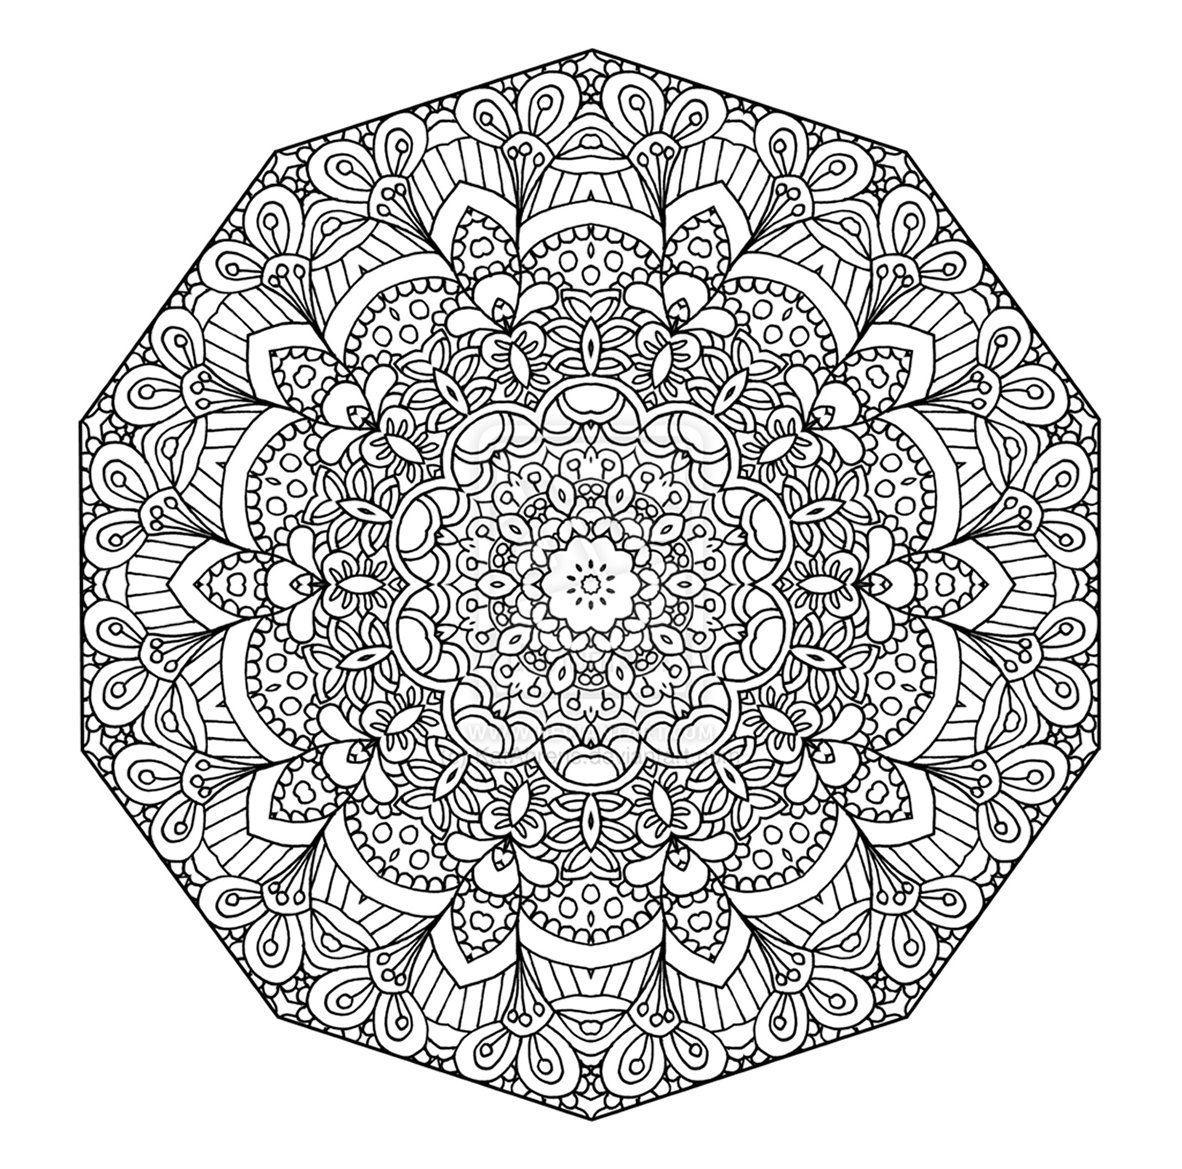 Mandala coloring pages for adults animals - Detailed Mandala Coloring Pages Adult Tagged With Detailed